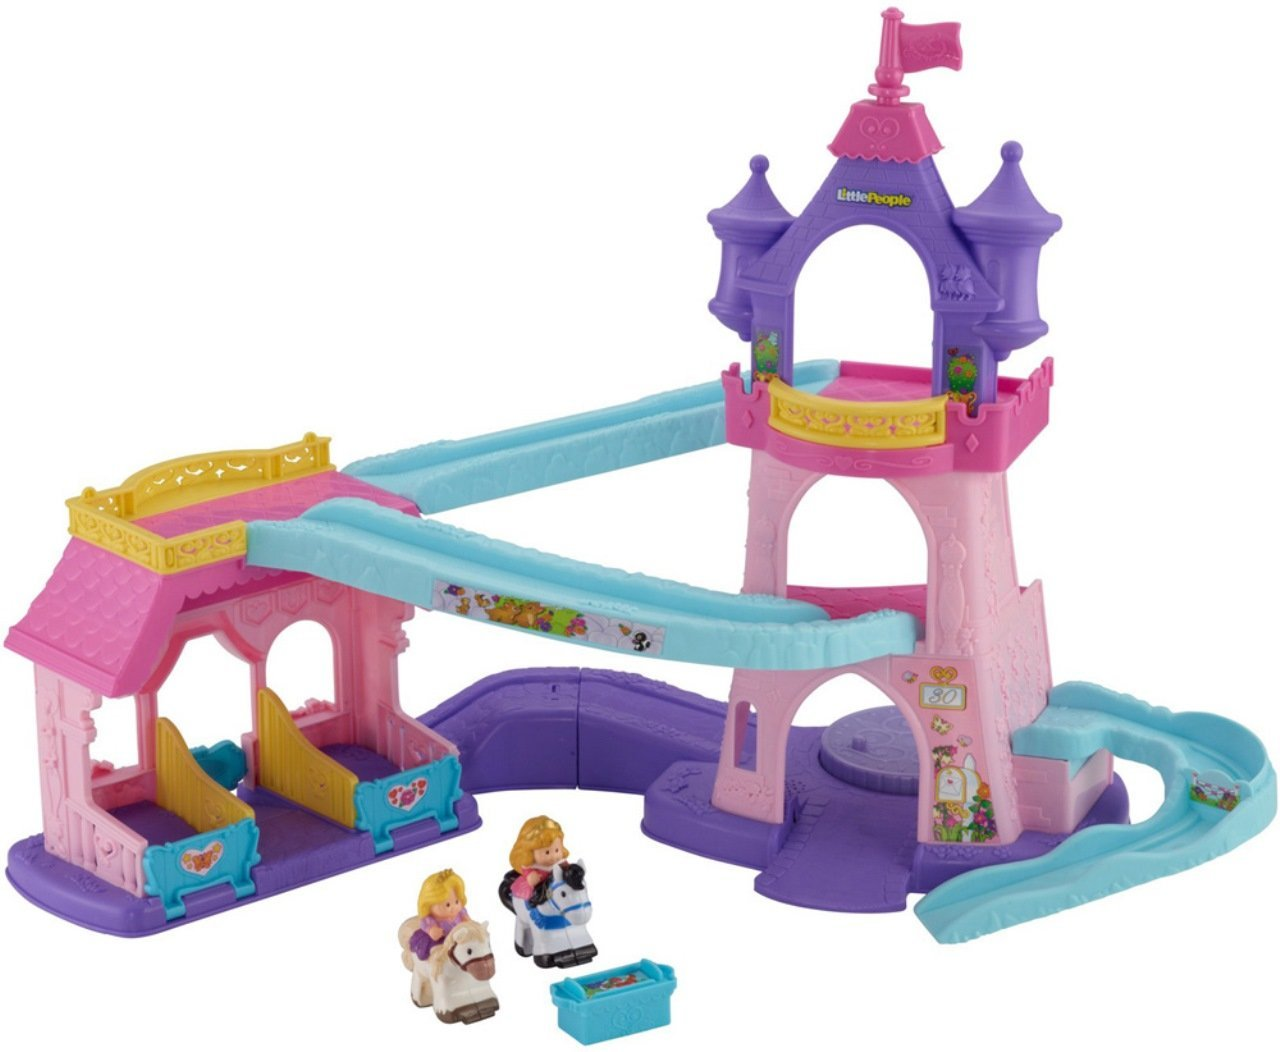 Fisher-Price Little People Disney Princess Klip Klop Stable (Discontinued by manufacturer)